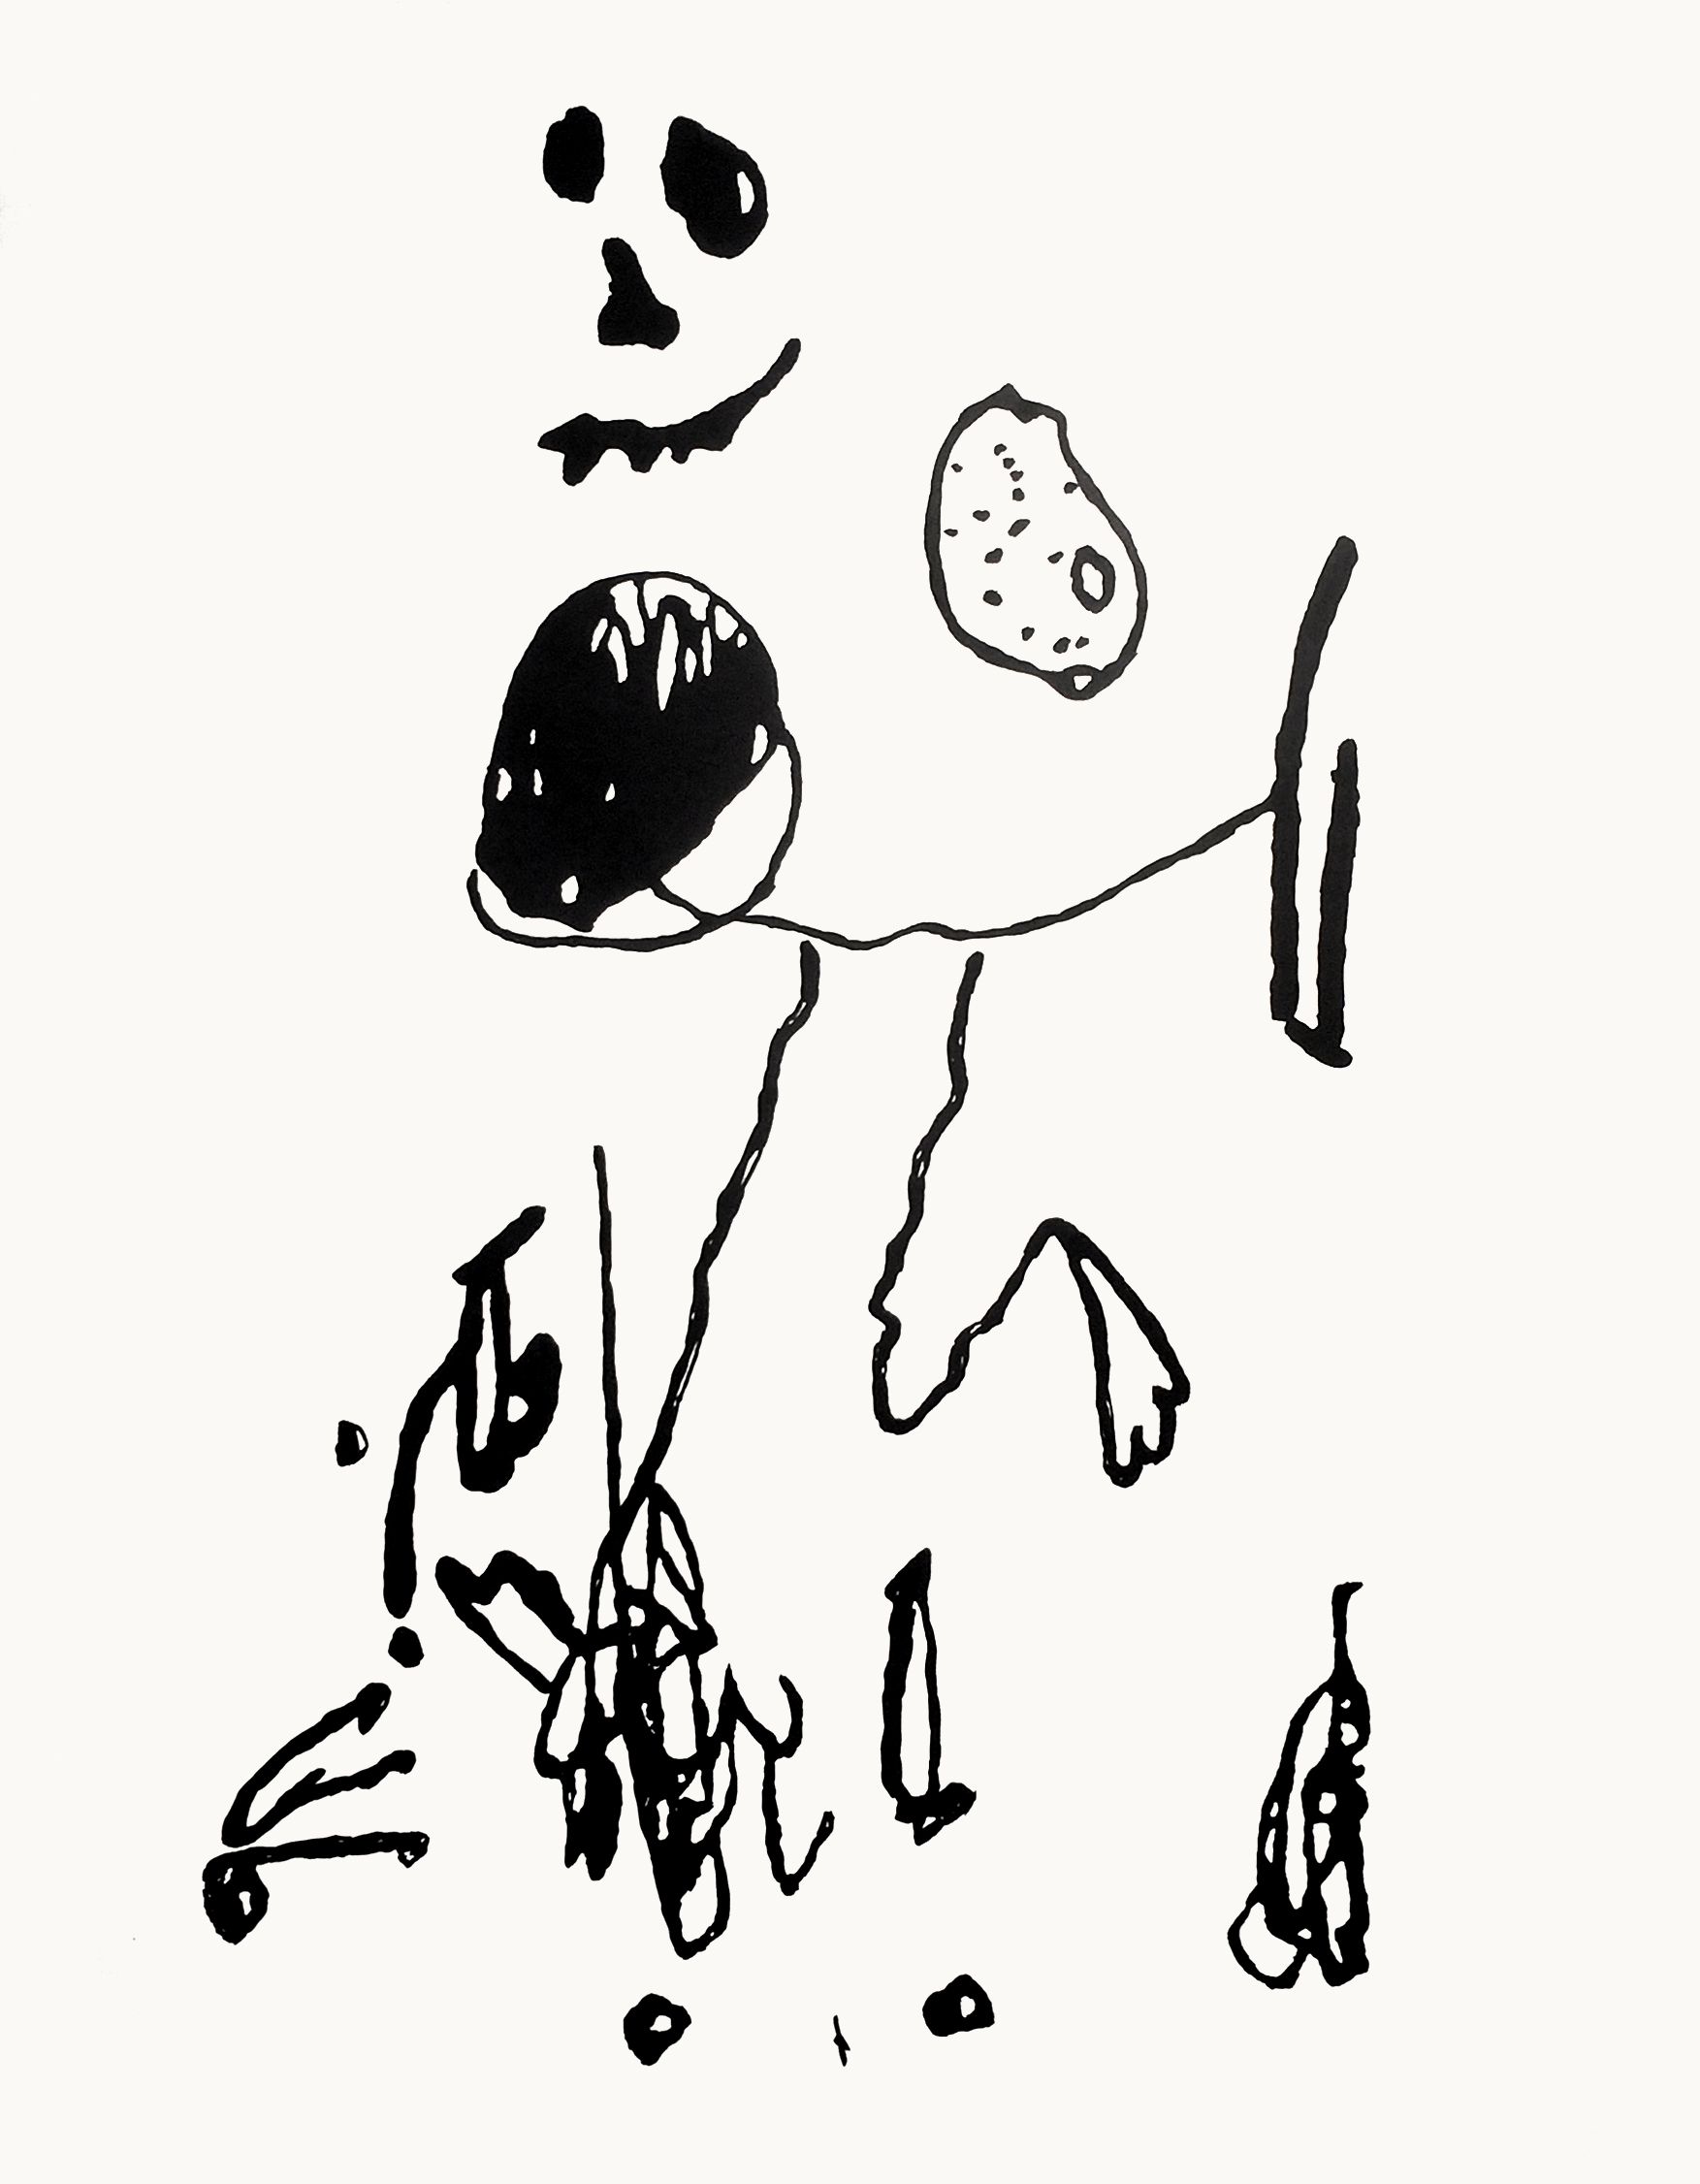 Stealing Fruit, 2016, sumi ink on paper